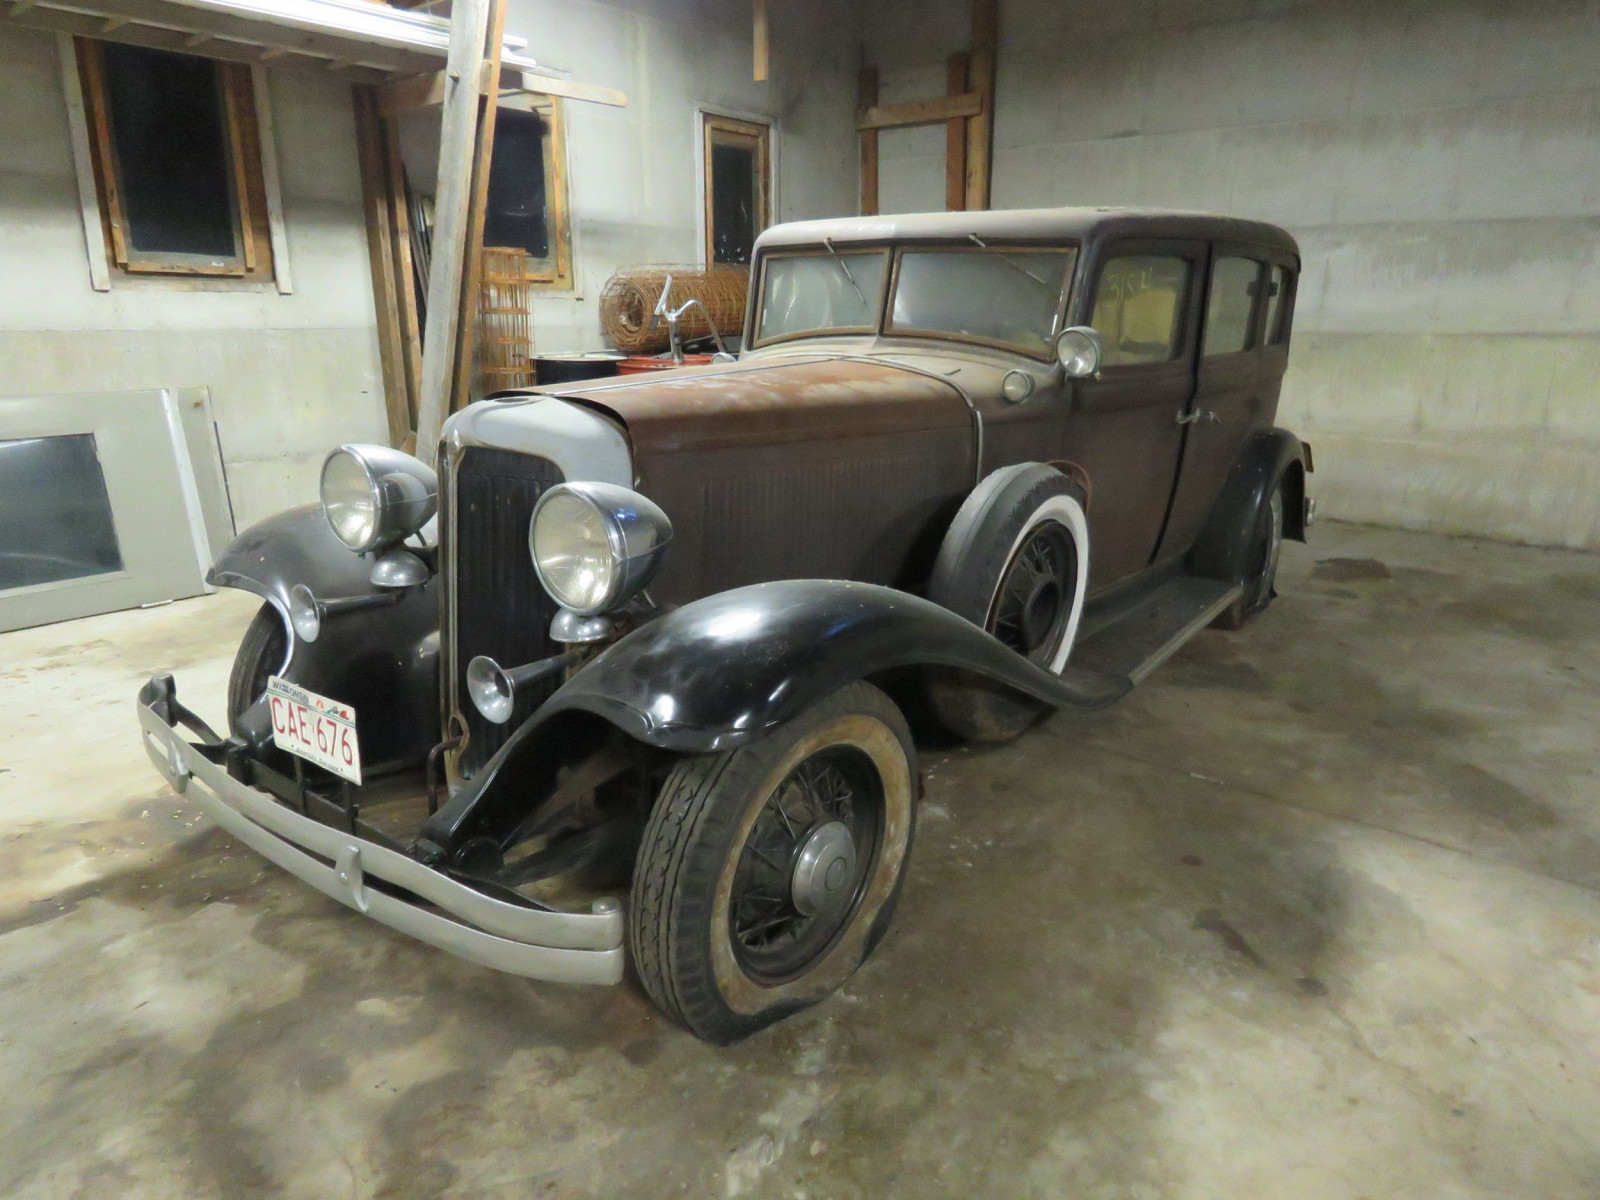 RARE 1932 Chrysler 4dr Sedan - Image 1